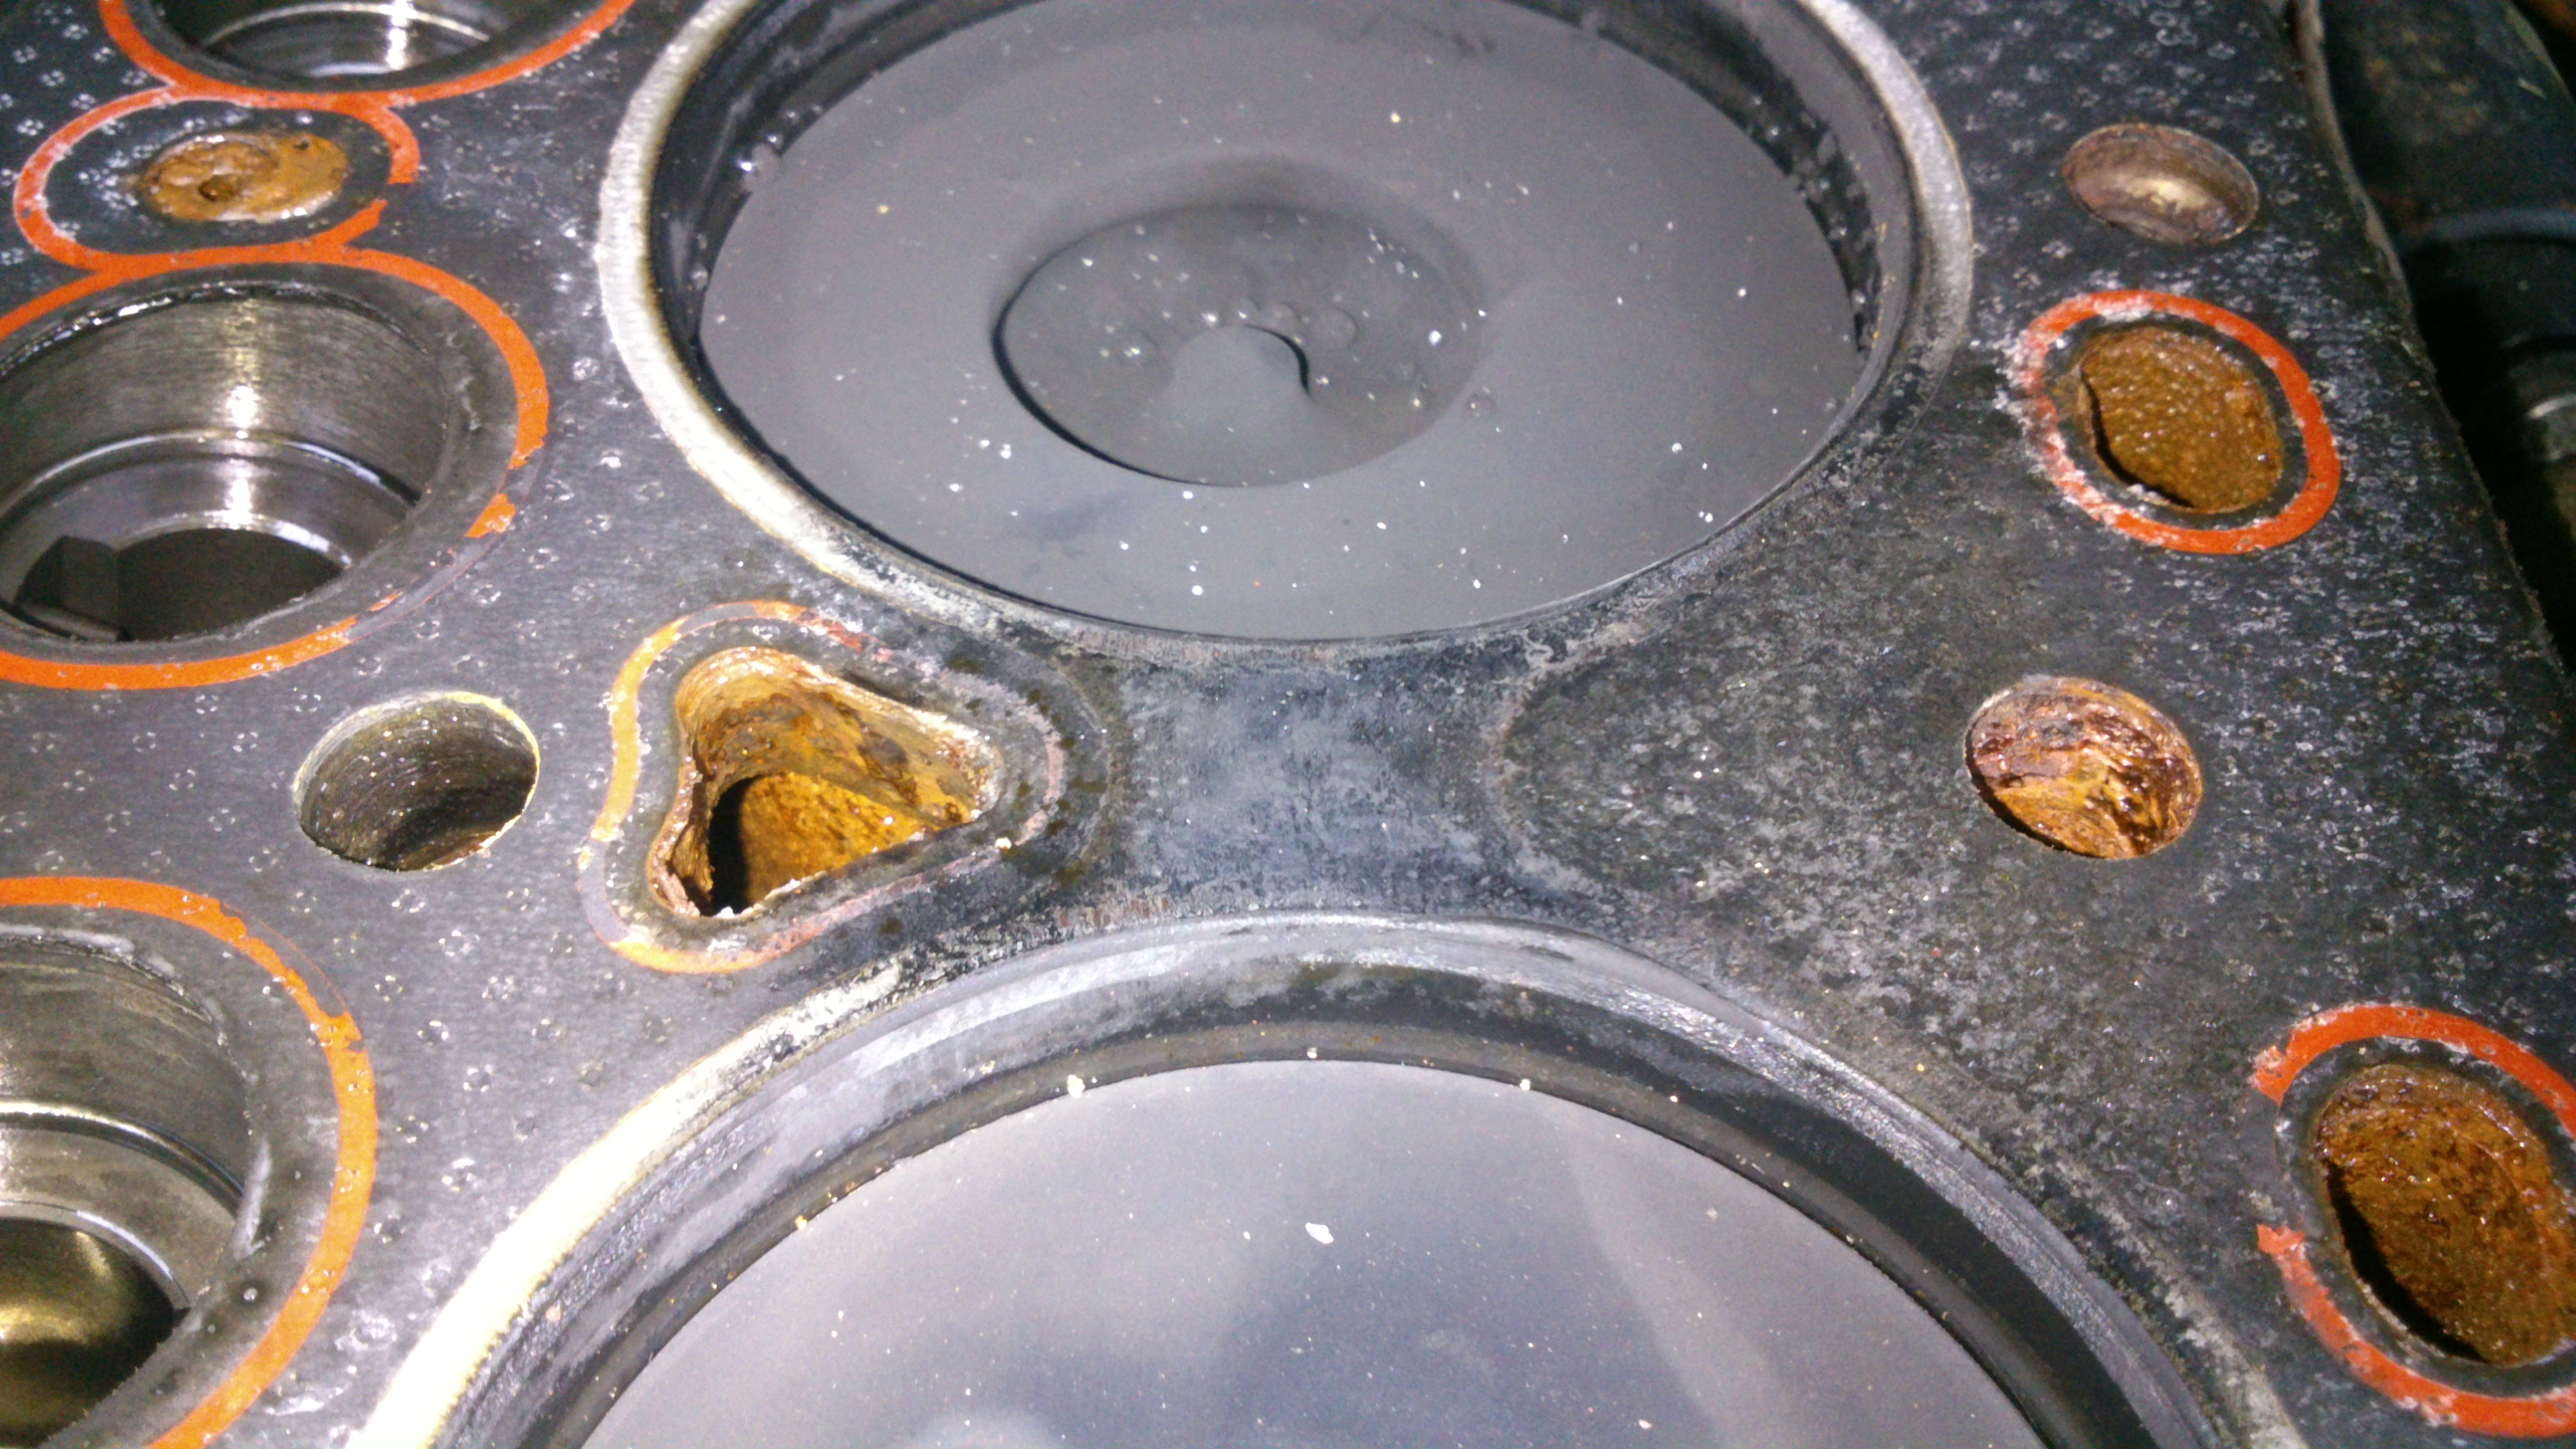 What is damaged in an engine when it overheats?